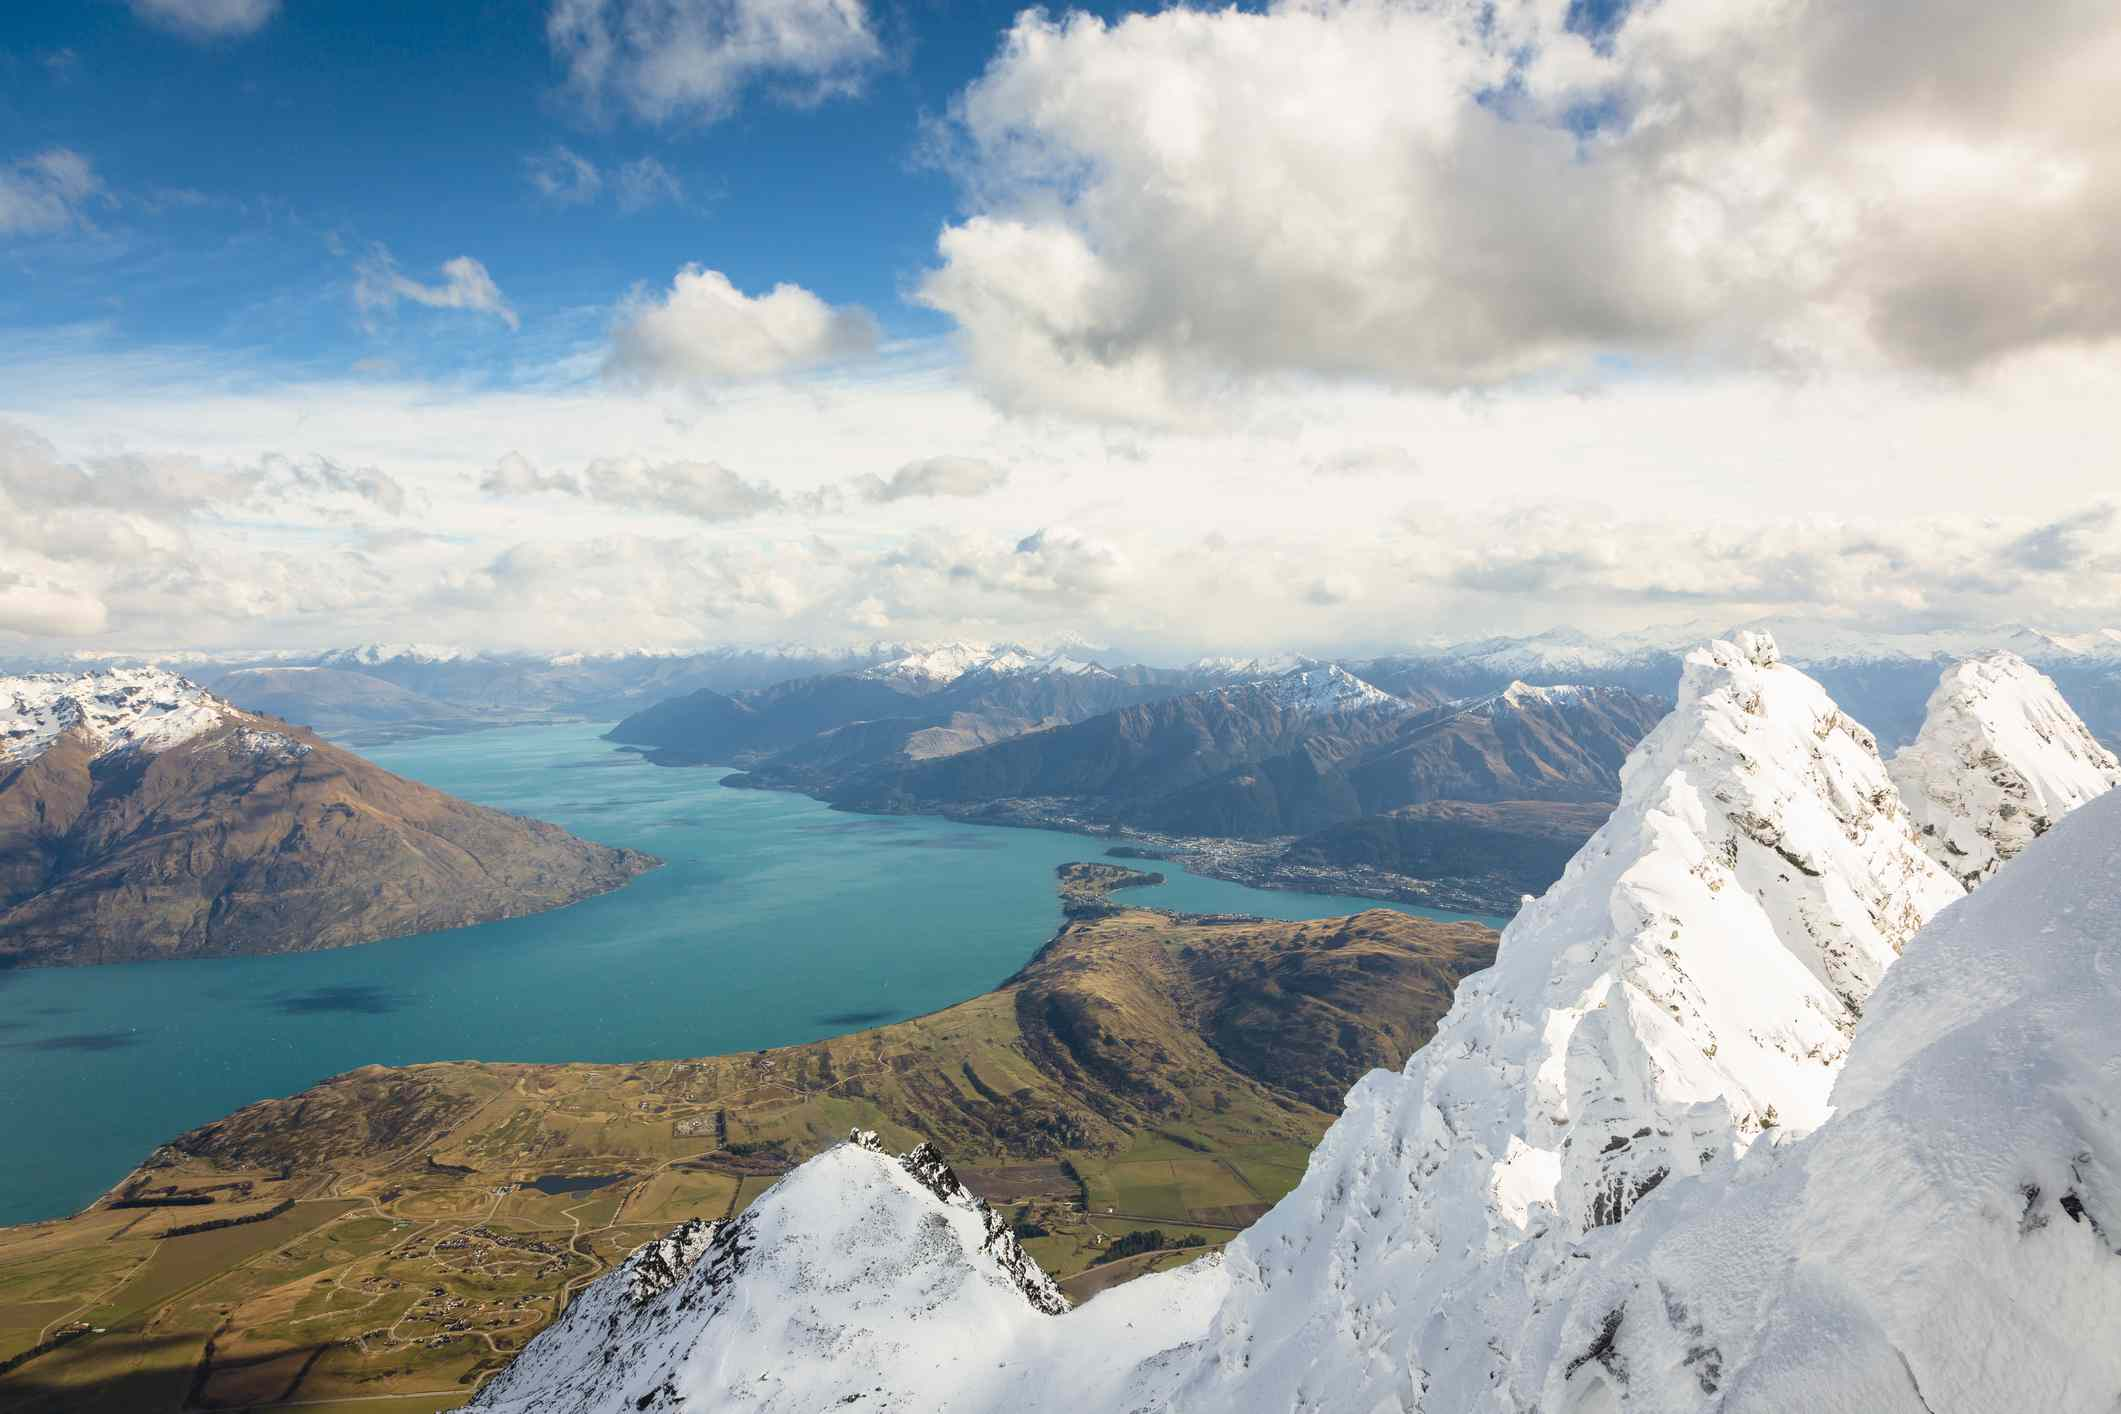 Blue skies and fluffy what clouds above the turquoise water of Lake Wakatipu, surrounded by green and brown hills, with the snow-covered mountains of The Remarkables mountain range in the foreground